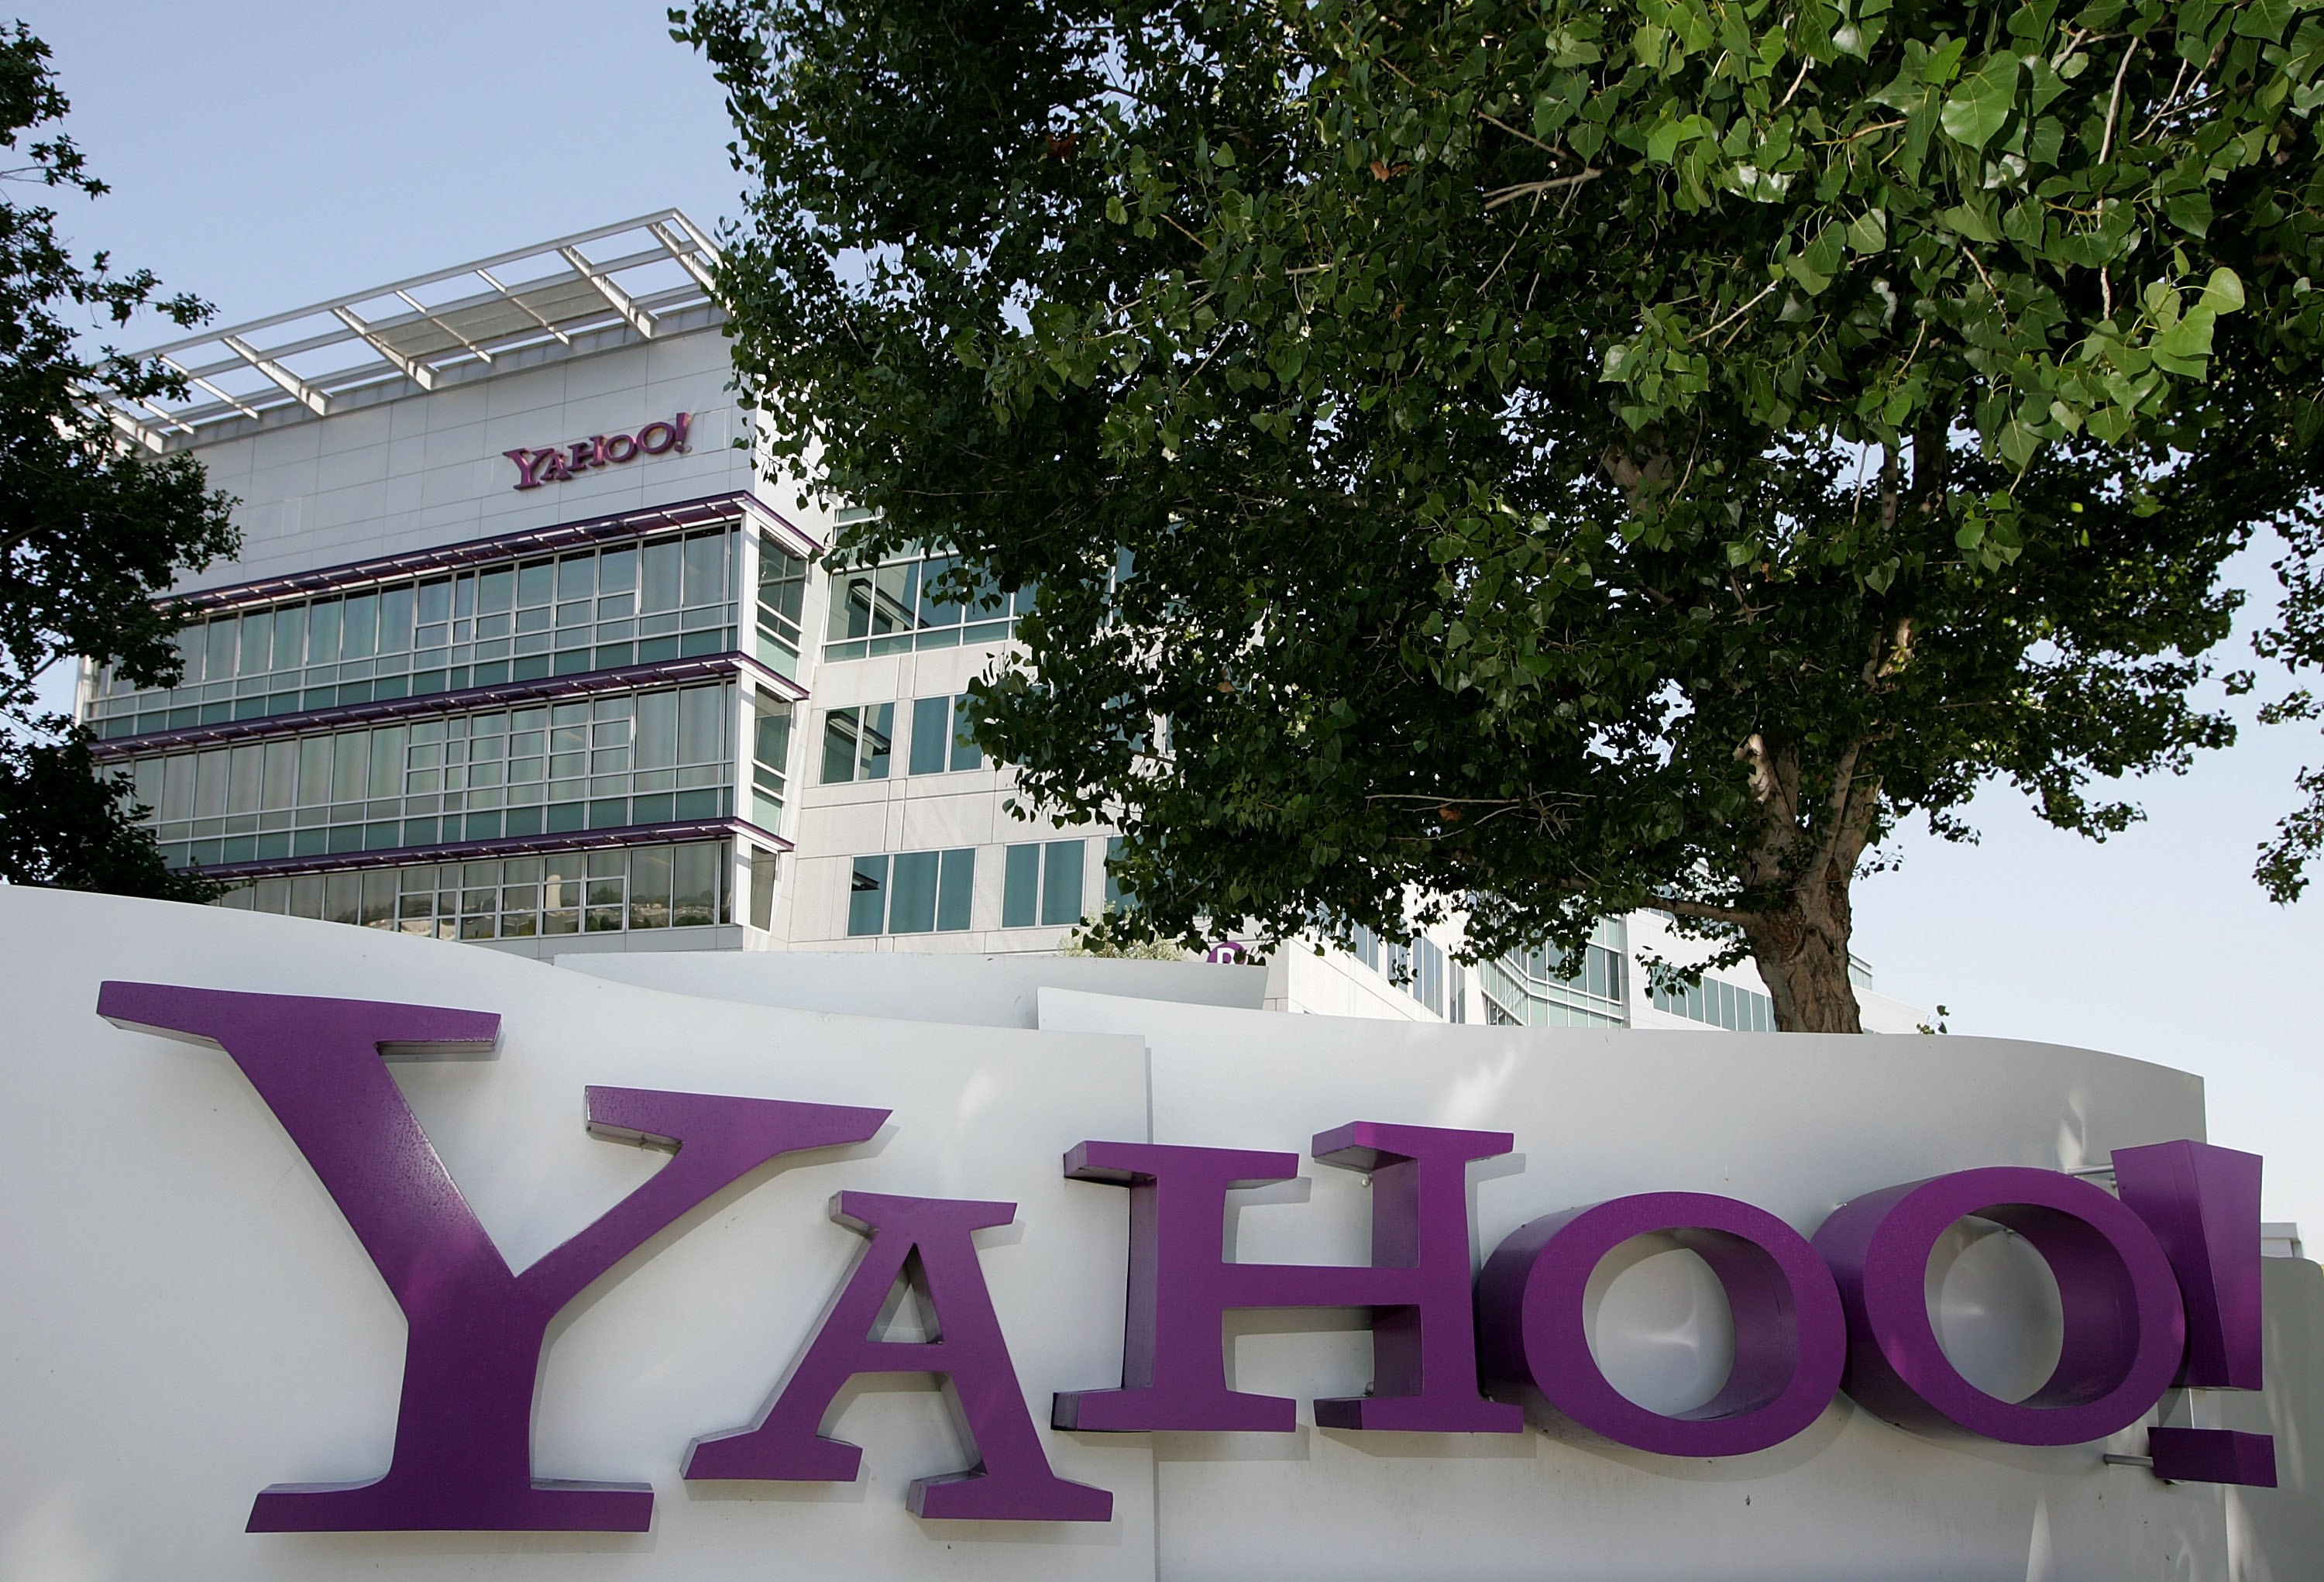 SUNNYVALE, CA - JULY 18:  A sign is seen in front of the Yahoo! headquarters July 18, 2006 in Sunnyvale, California. Yahoo! Inc. reported  second quarter earnings of $164.3 million or 11 cents a share, down 78 percent from the second quarter of 2005 when the company reported earnings of 754.7 million, or 51 cents per share.  (Photo by Justin Sullivan/Getty Images)